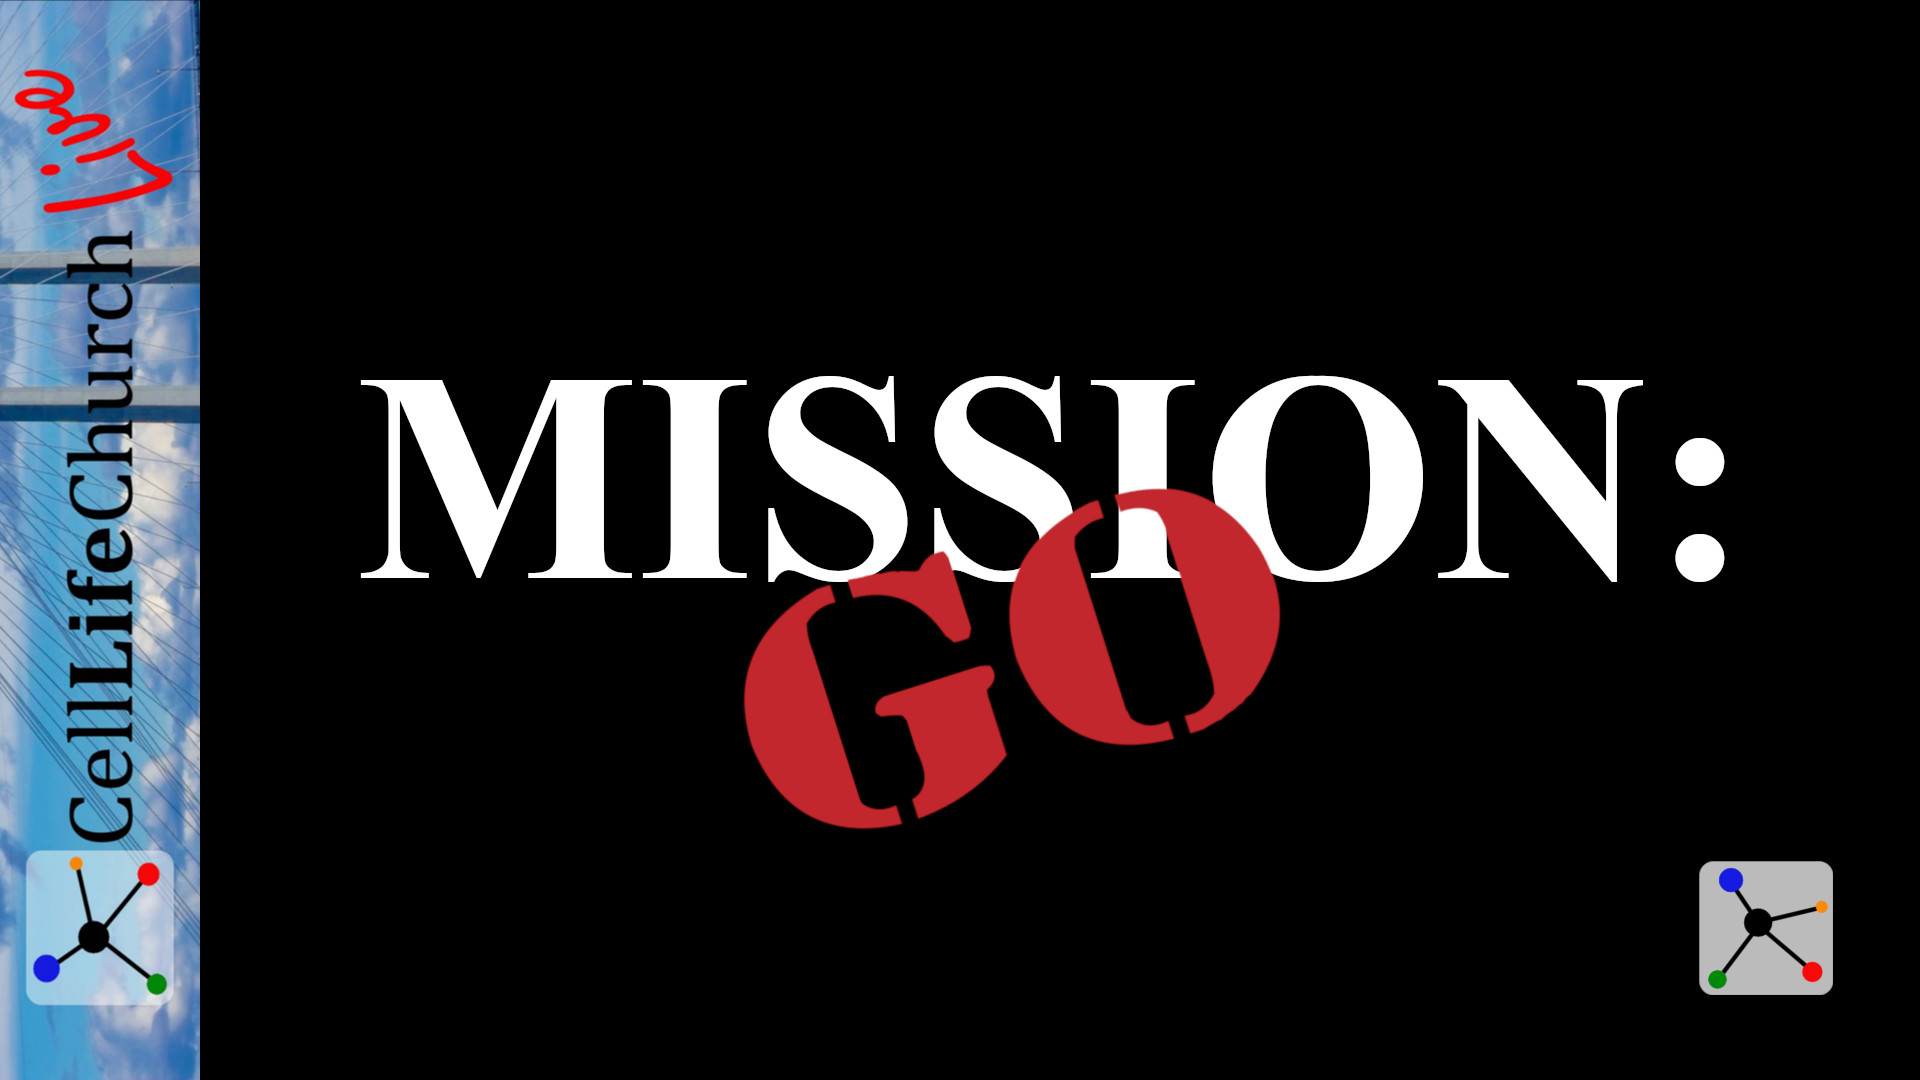 Mission: Go